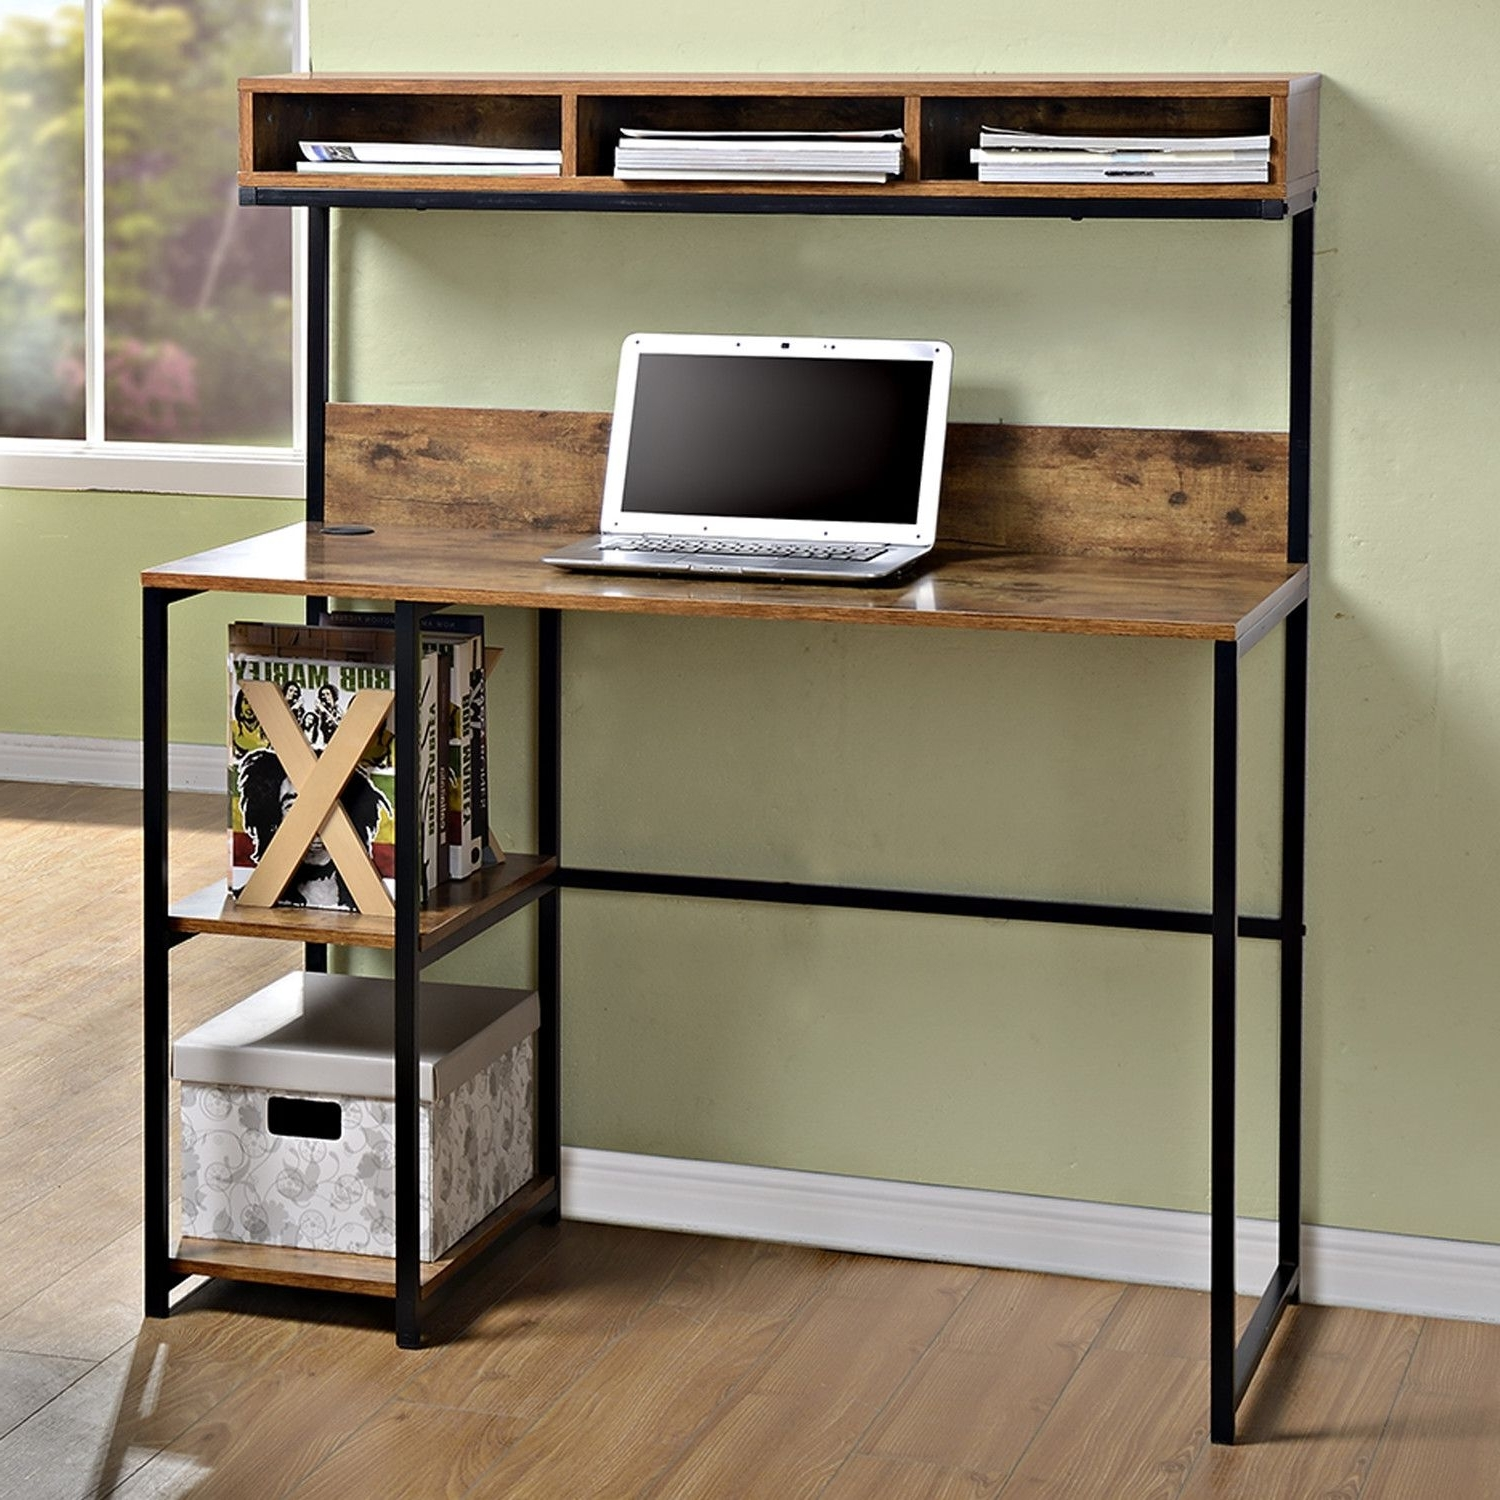 Computer Desks With Bookshelves Intended For 2019 23+ Diy Computer Desk Ideas That Make More Spirit Work (View 17 of 20)